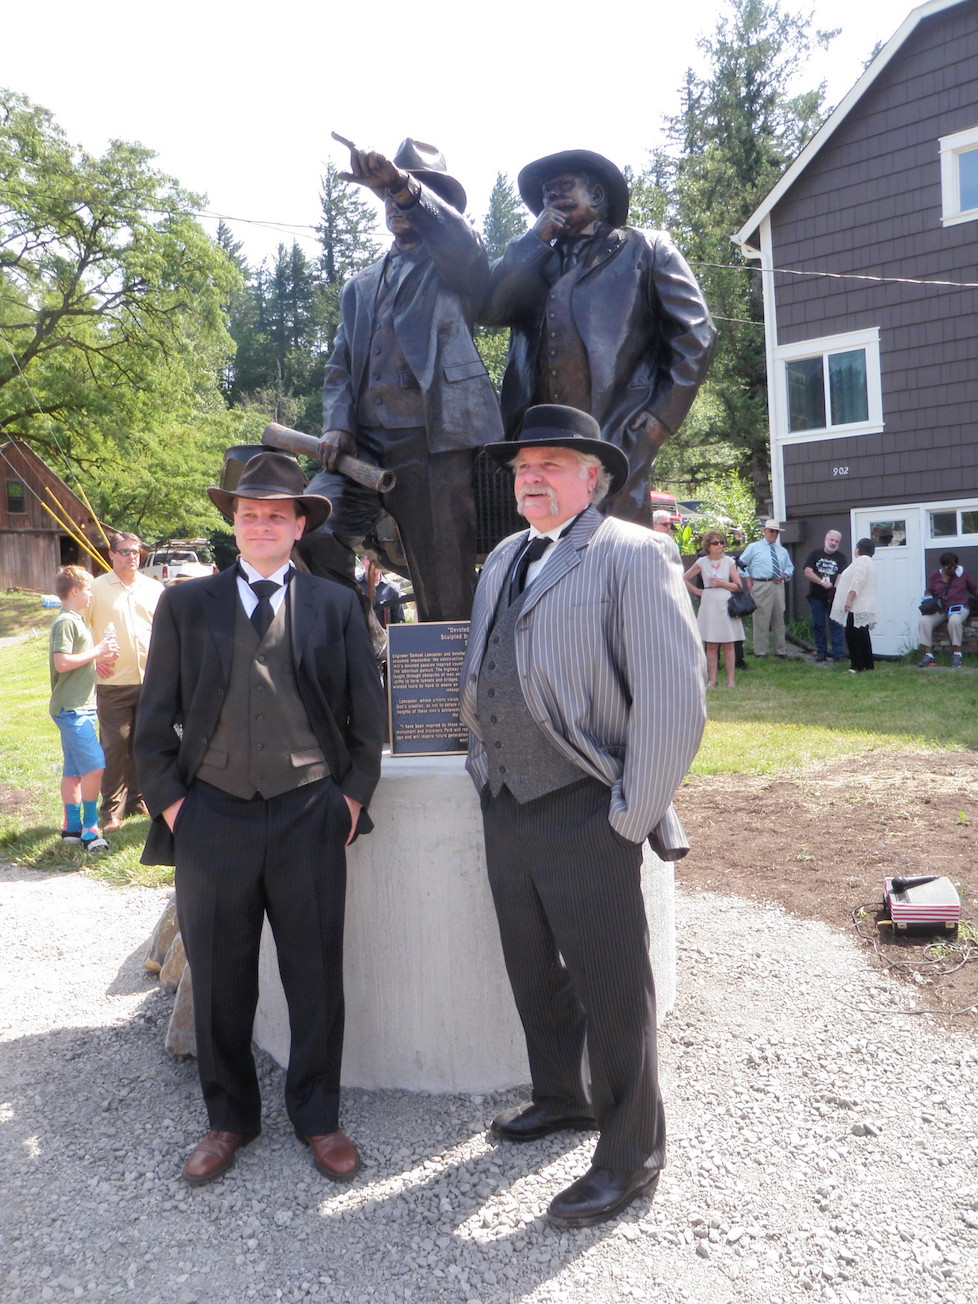 MOdels of Sam Hill and Sam Lancaster pose next to new statue